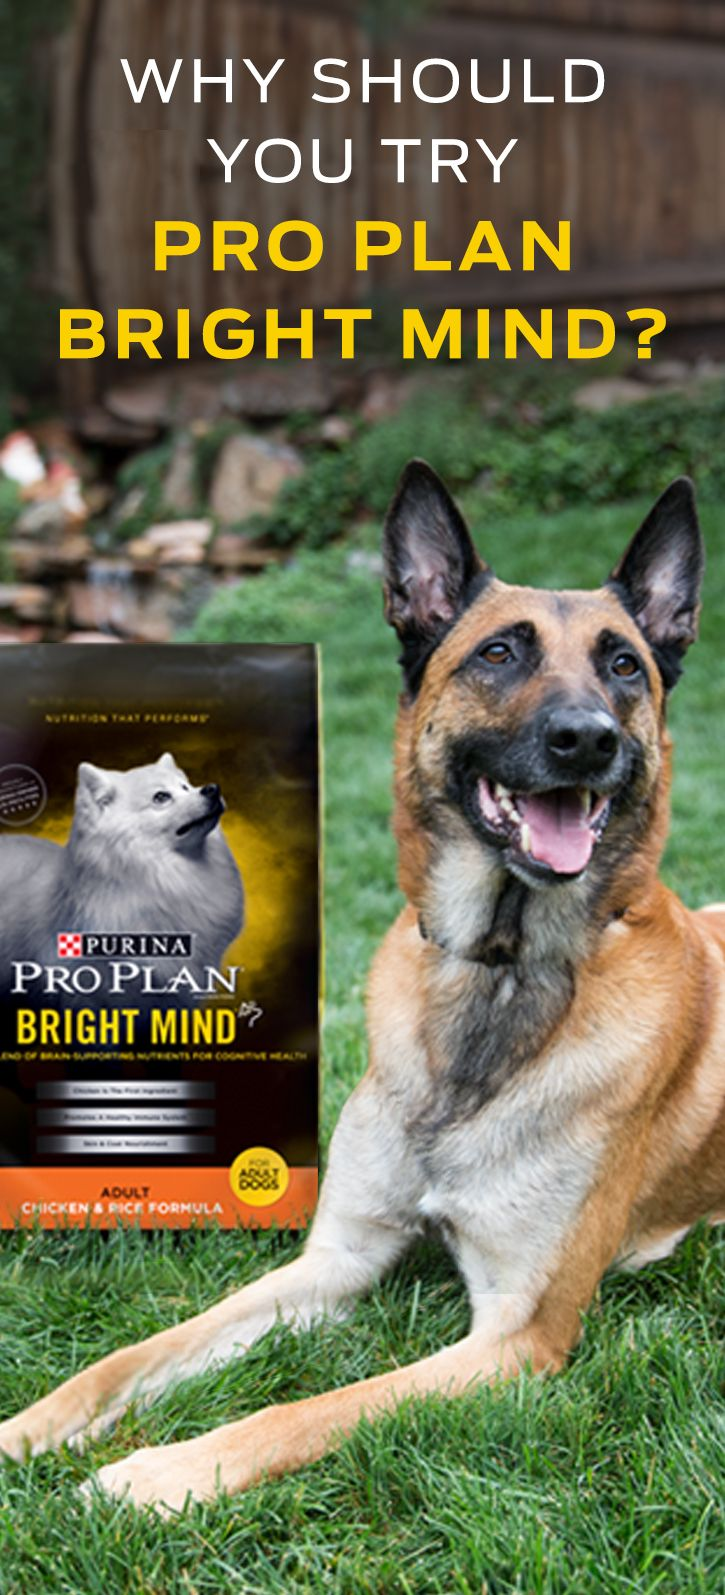 Purina Pro Plan Bright Mind Adult is specially formulated to nourish your dog's mind throughout adulthood. Our Bright Mind Adult formulas contain a proprietary blend of nutrients including DHA & EPA, Antioxidants, B Vitamins, and Arginine to support a dog's cognitive health throughout adulthood. And if your dog is seven years or older, there are Bright Mind Adult 7+ formulas which promote mental sharpness and alertness in dogs seven and older. Try one of our Bright Mind Adult formulas today!